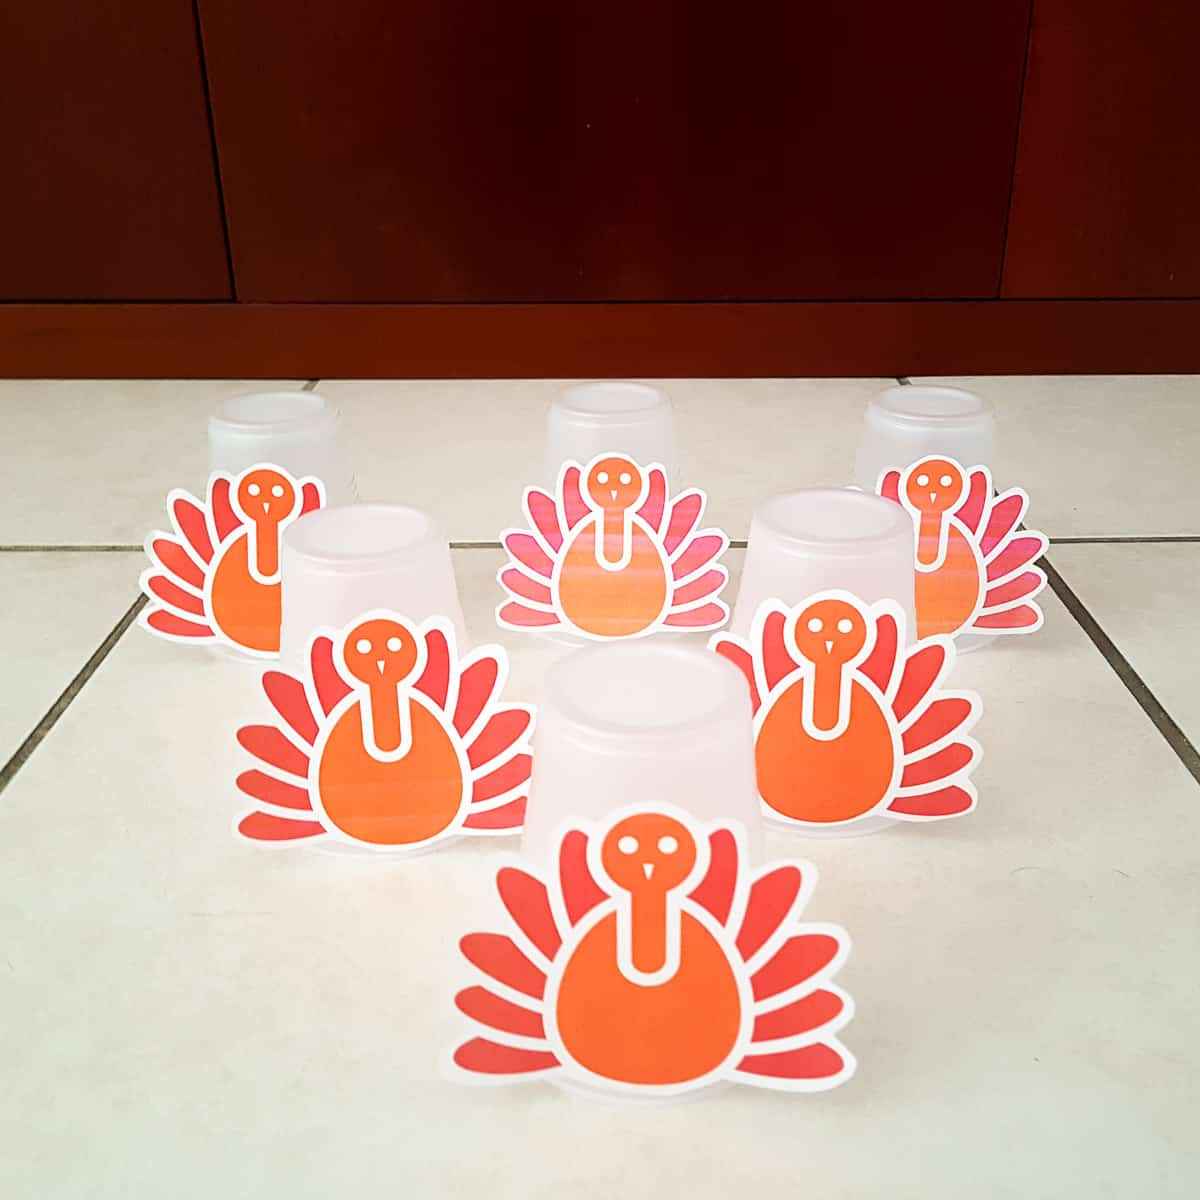 plastic cups with paper thanksgiving turkeys glued to them lined up like bowling pins to demonstrate a toddler thanksgiving bowling activity